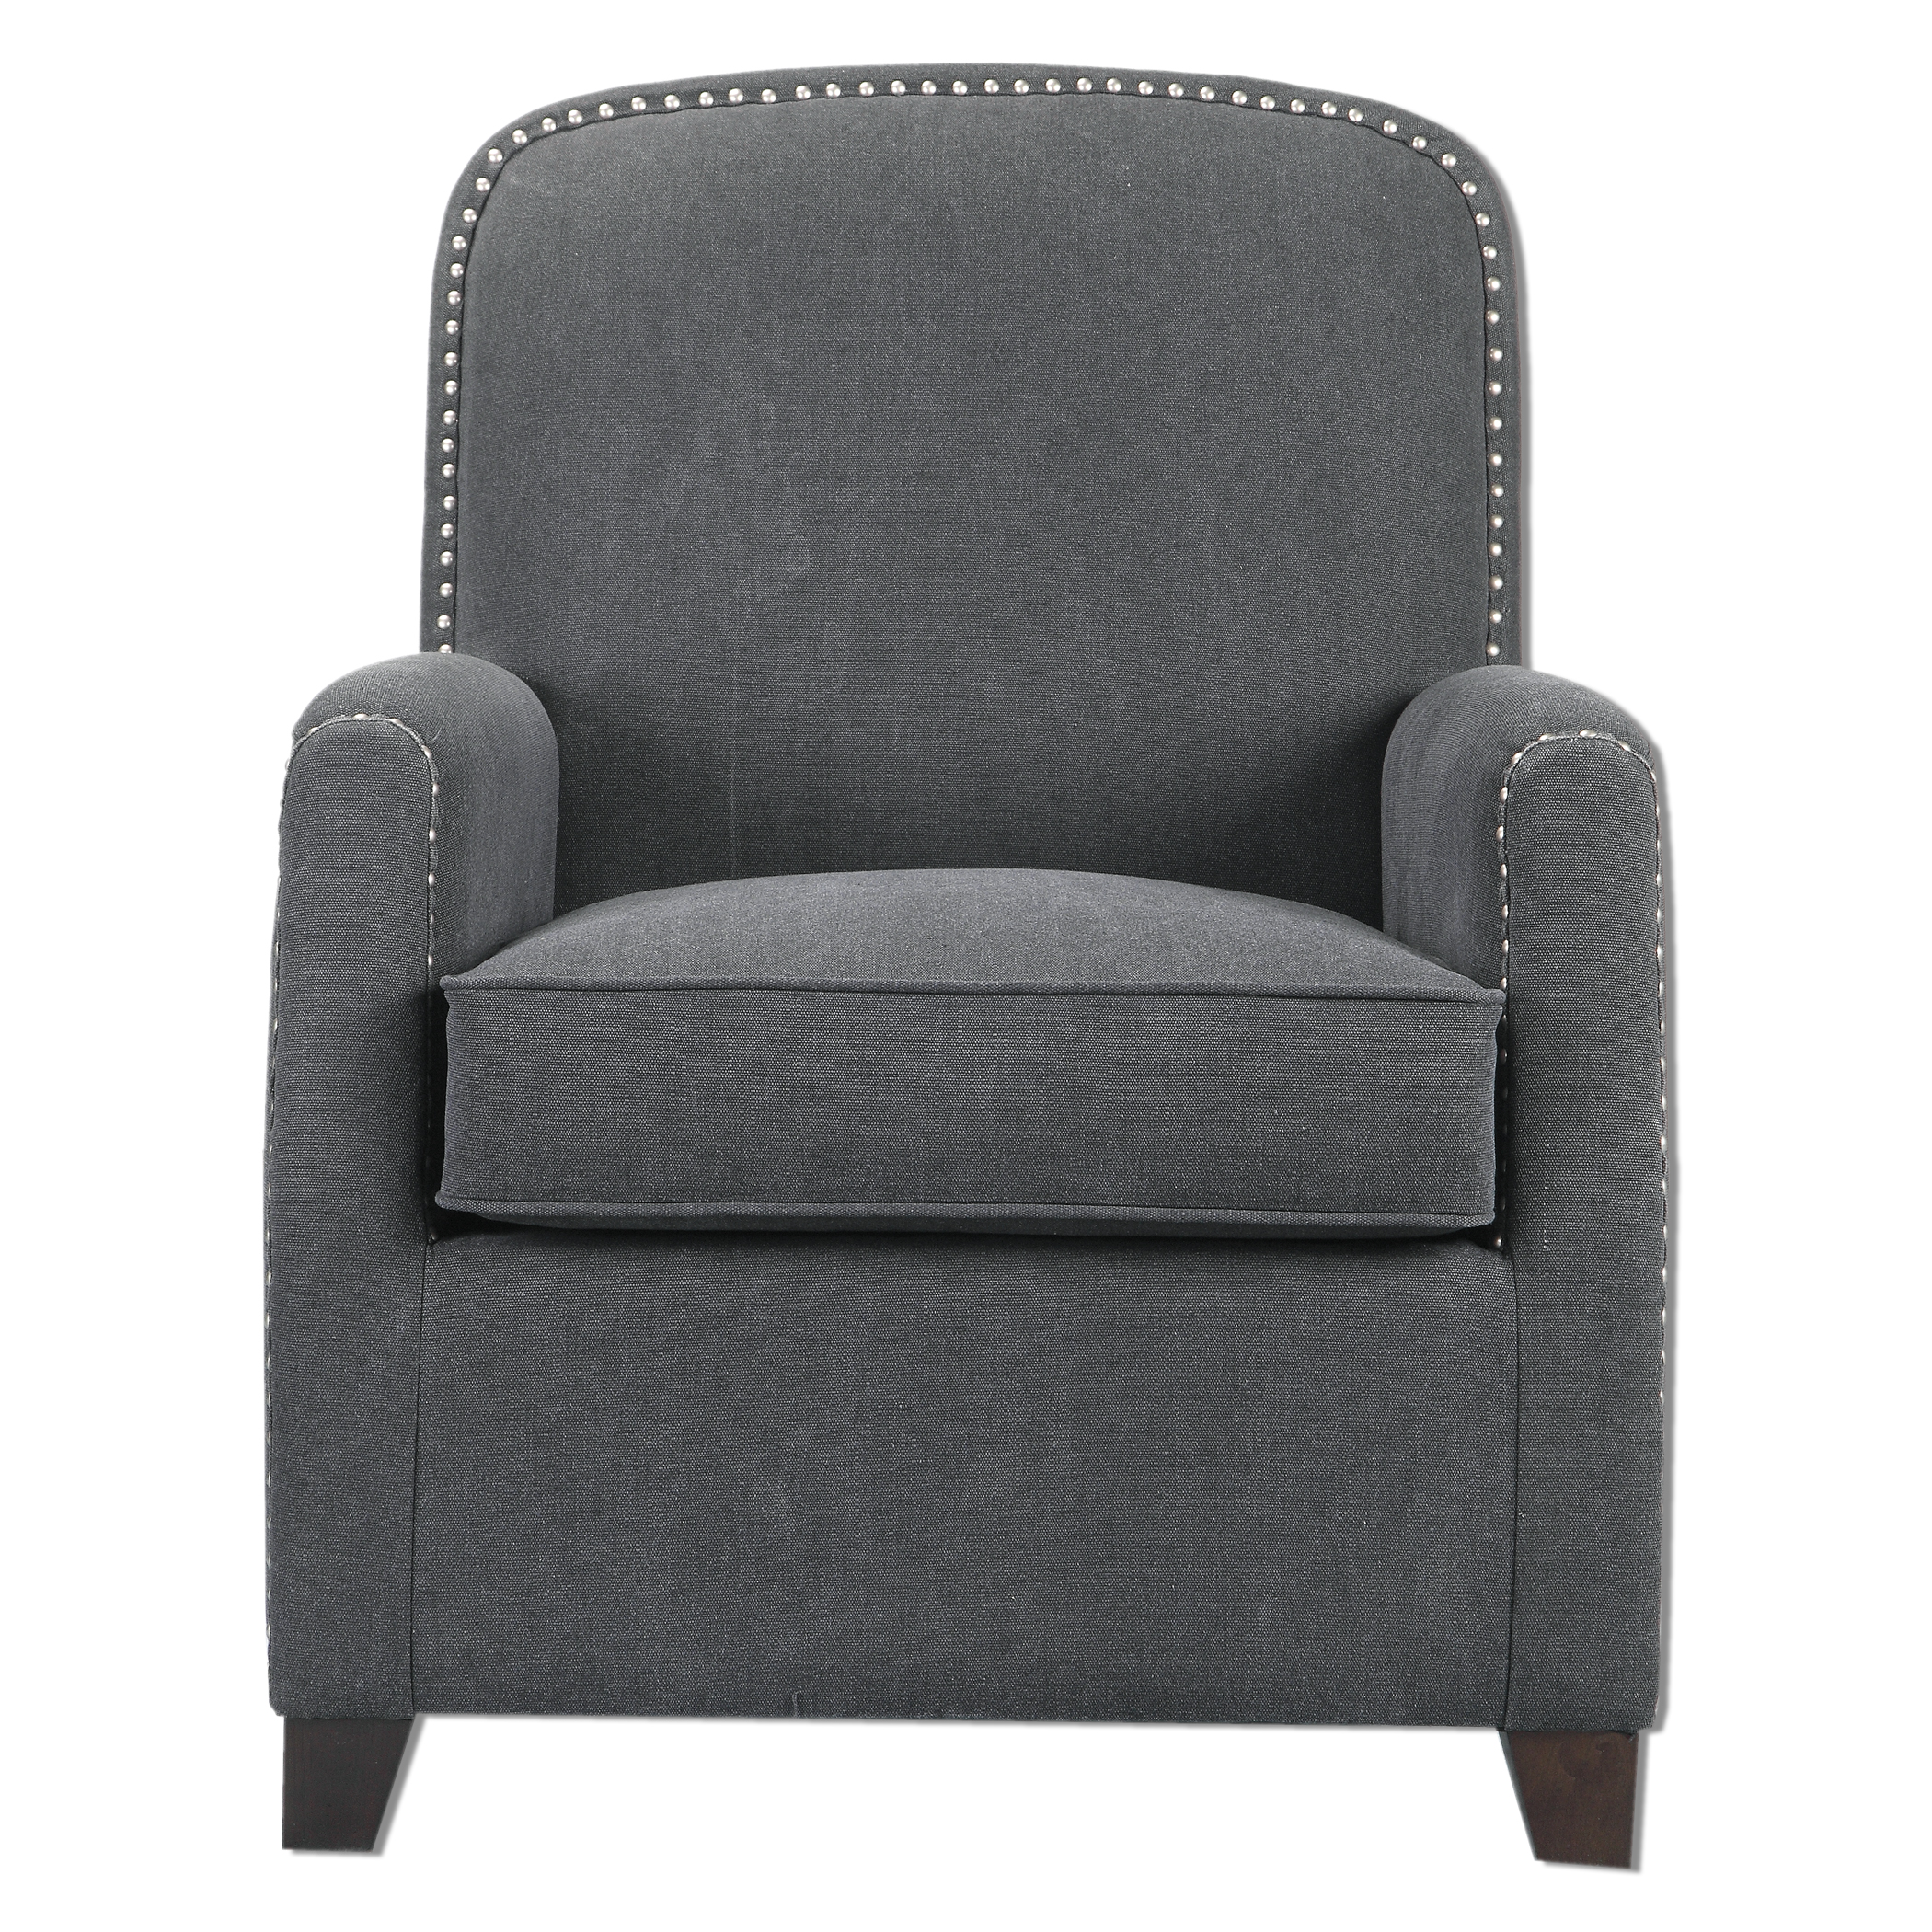 Uttermost Accent Furniture Domicia Gray Armchair - Item Number: 23255